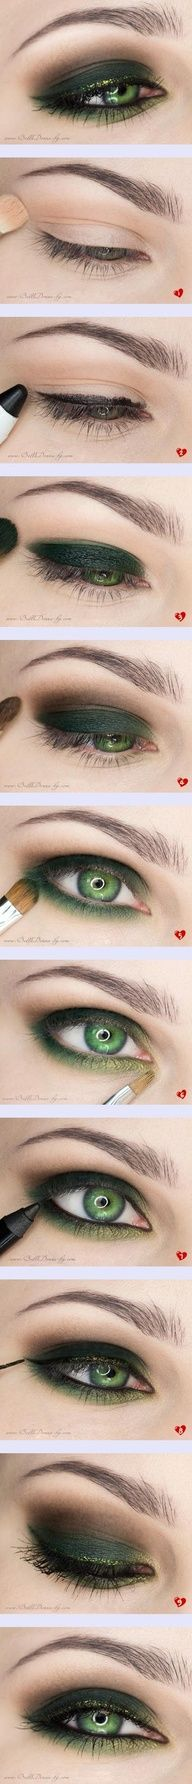 Makeup for green eyes | doing a black lid that is smoked out with warm browns will make the eye brighter and warmer, adding the gold liner compliments the gold in the eyes and the olive smoked out bottom lash line and inner corner makes the green eyes bigger and pop.